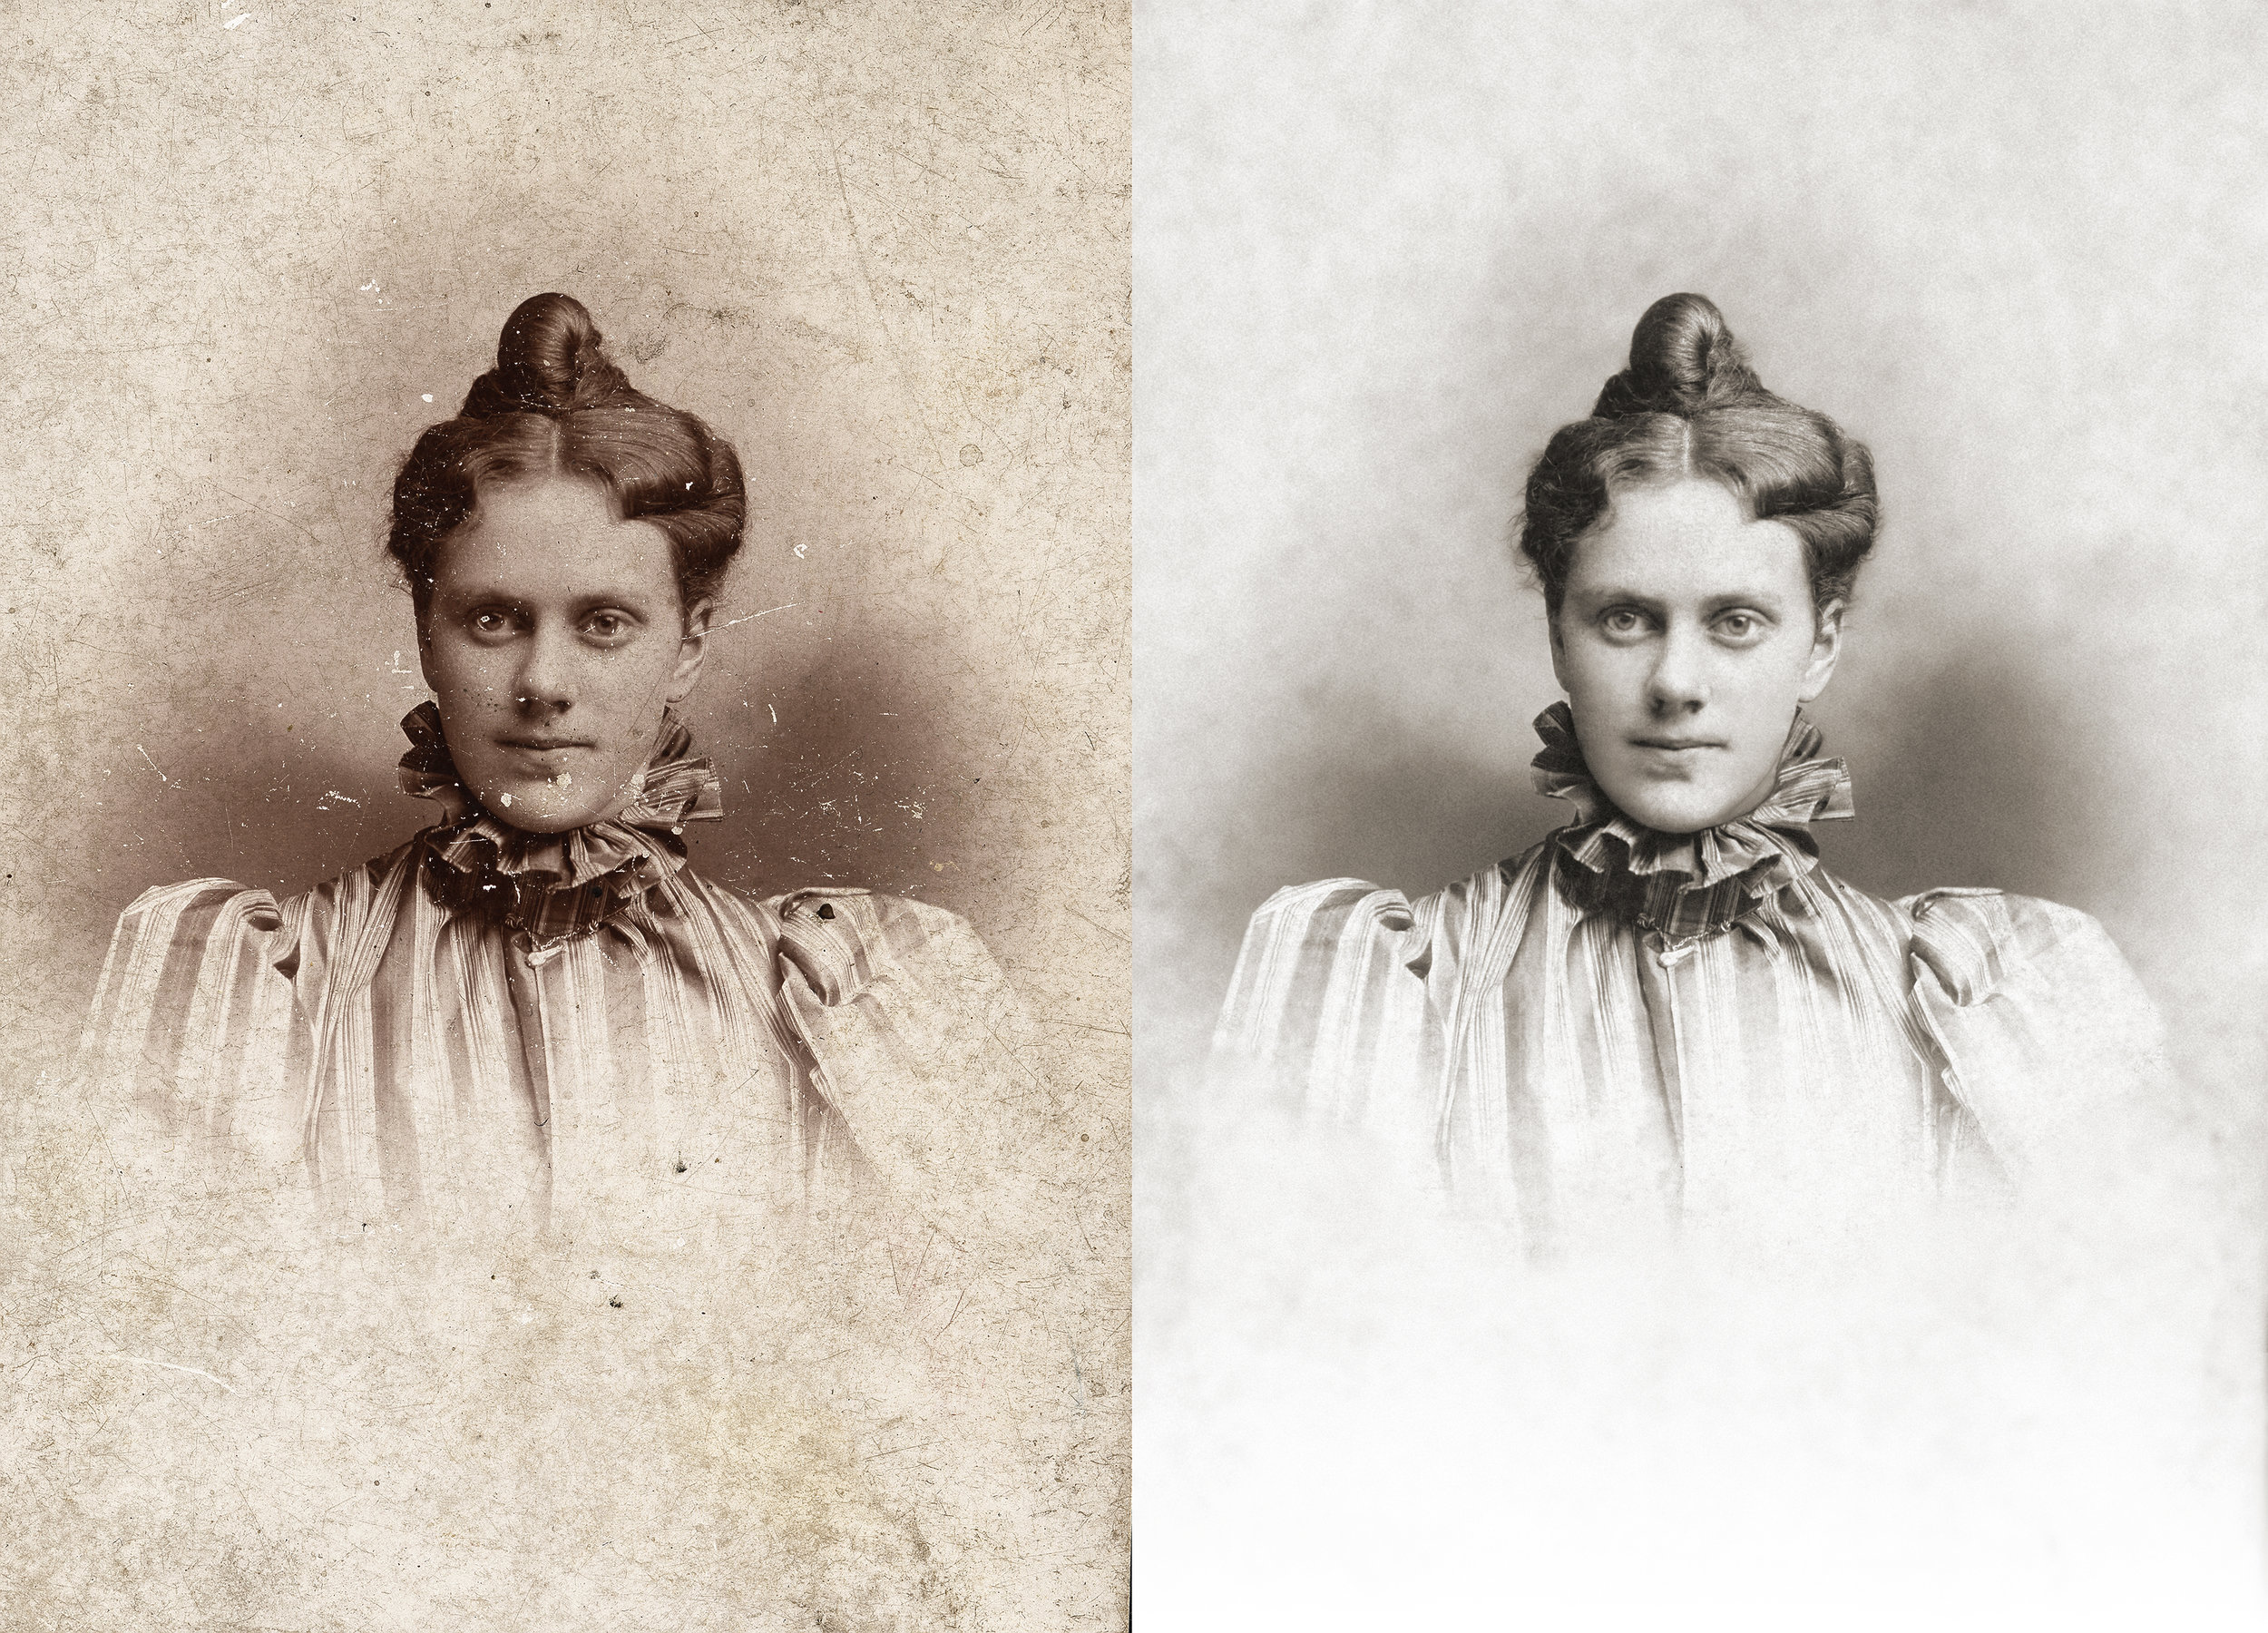 Photo Restoration - This photo had a great deal of cracking. It was a major restoration project. View Images